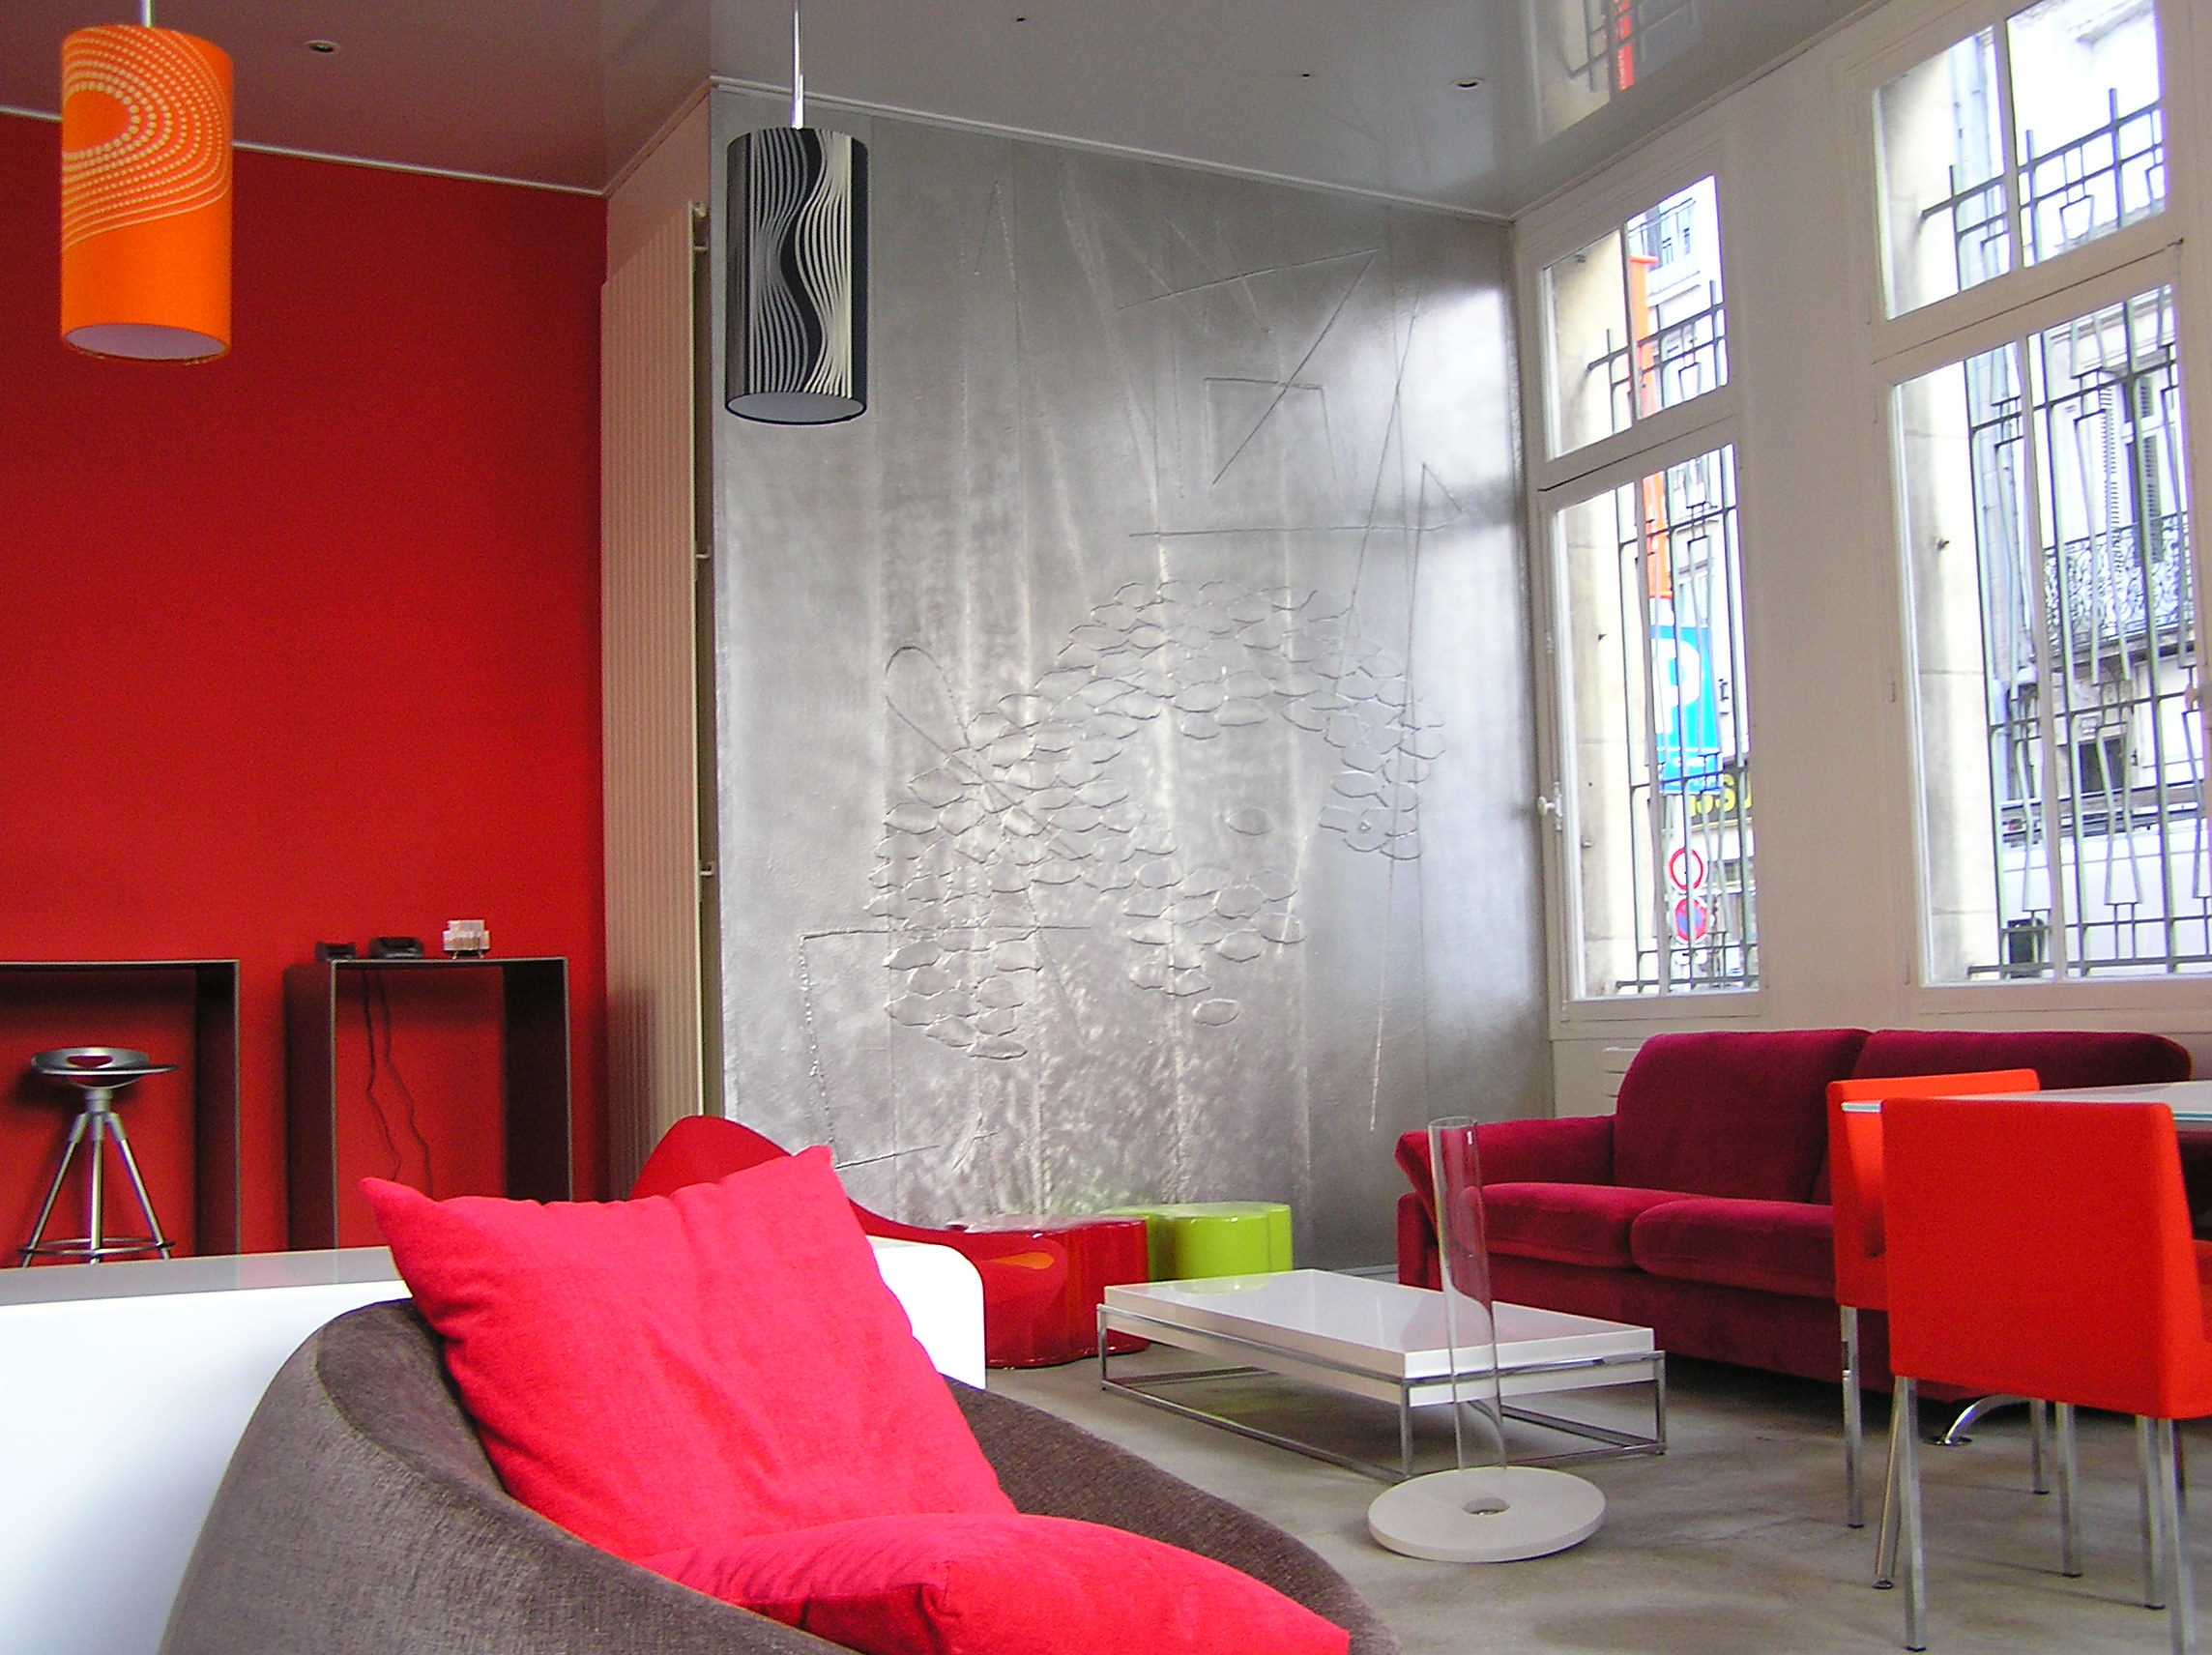 D coration contemporaine design mural en tain repouss d corateur - Photos de decoration ...